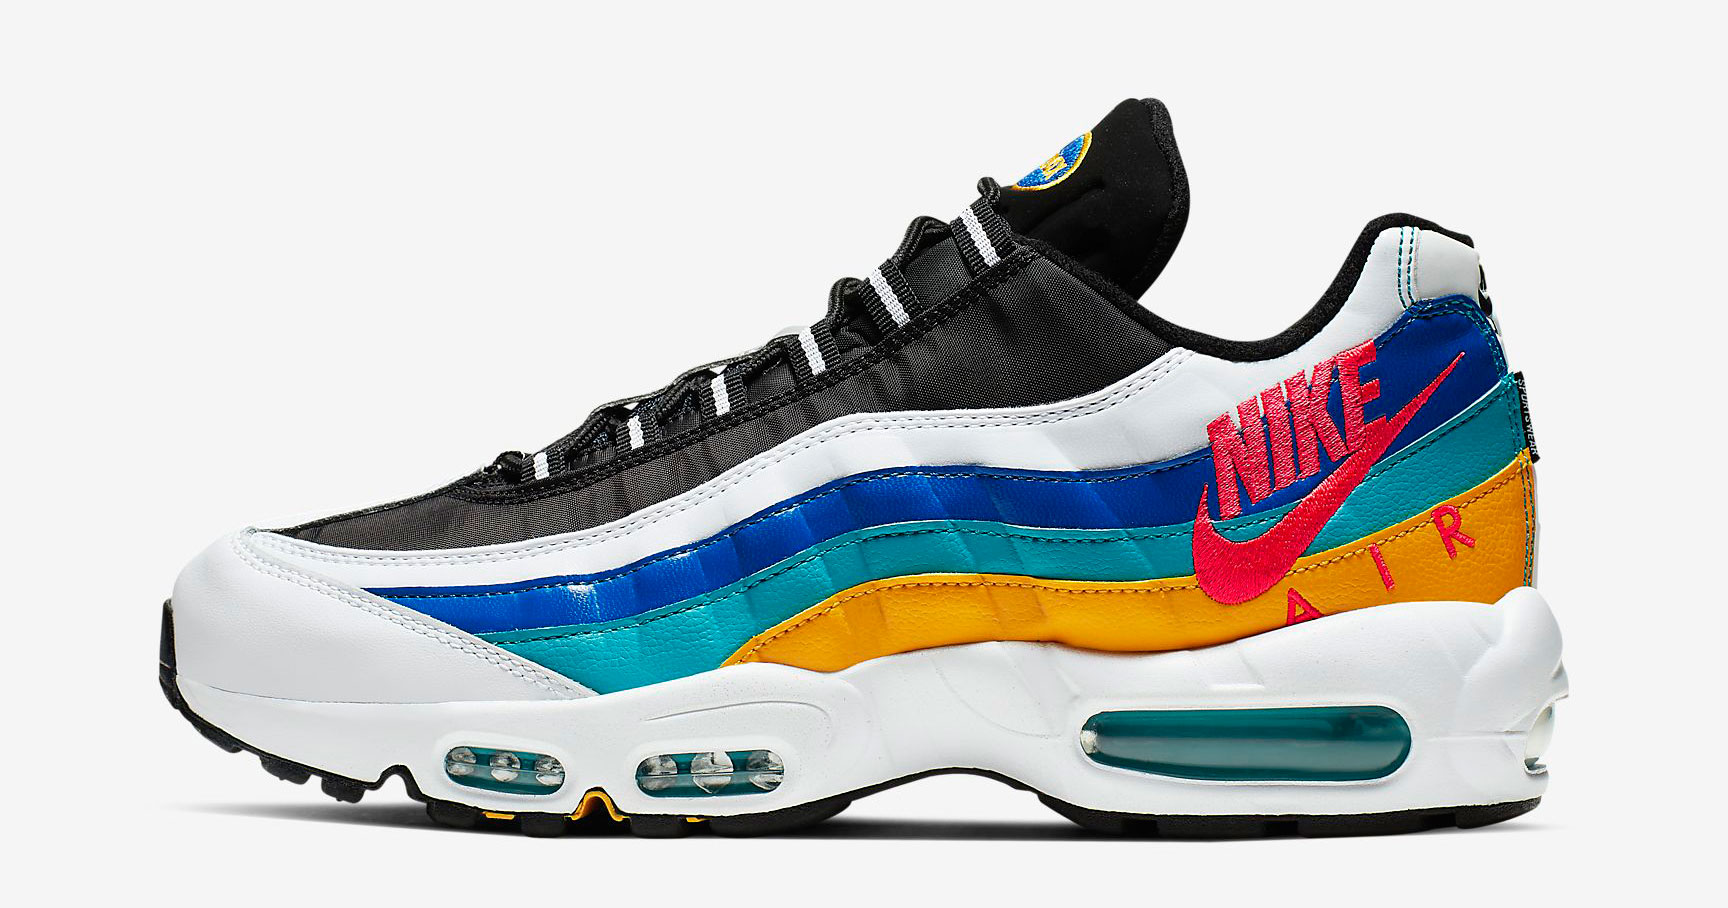 nike-air-max-95-game-changer-windbreaker-white-gold-teal-red-2